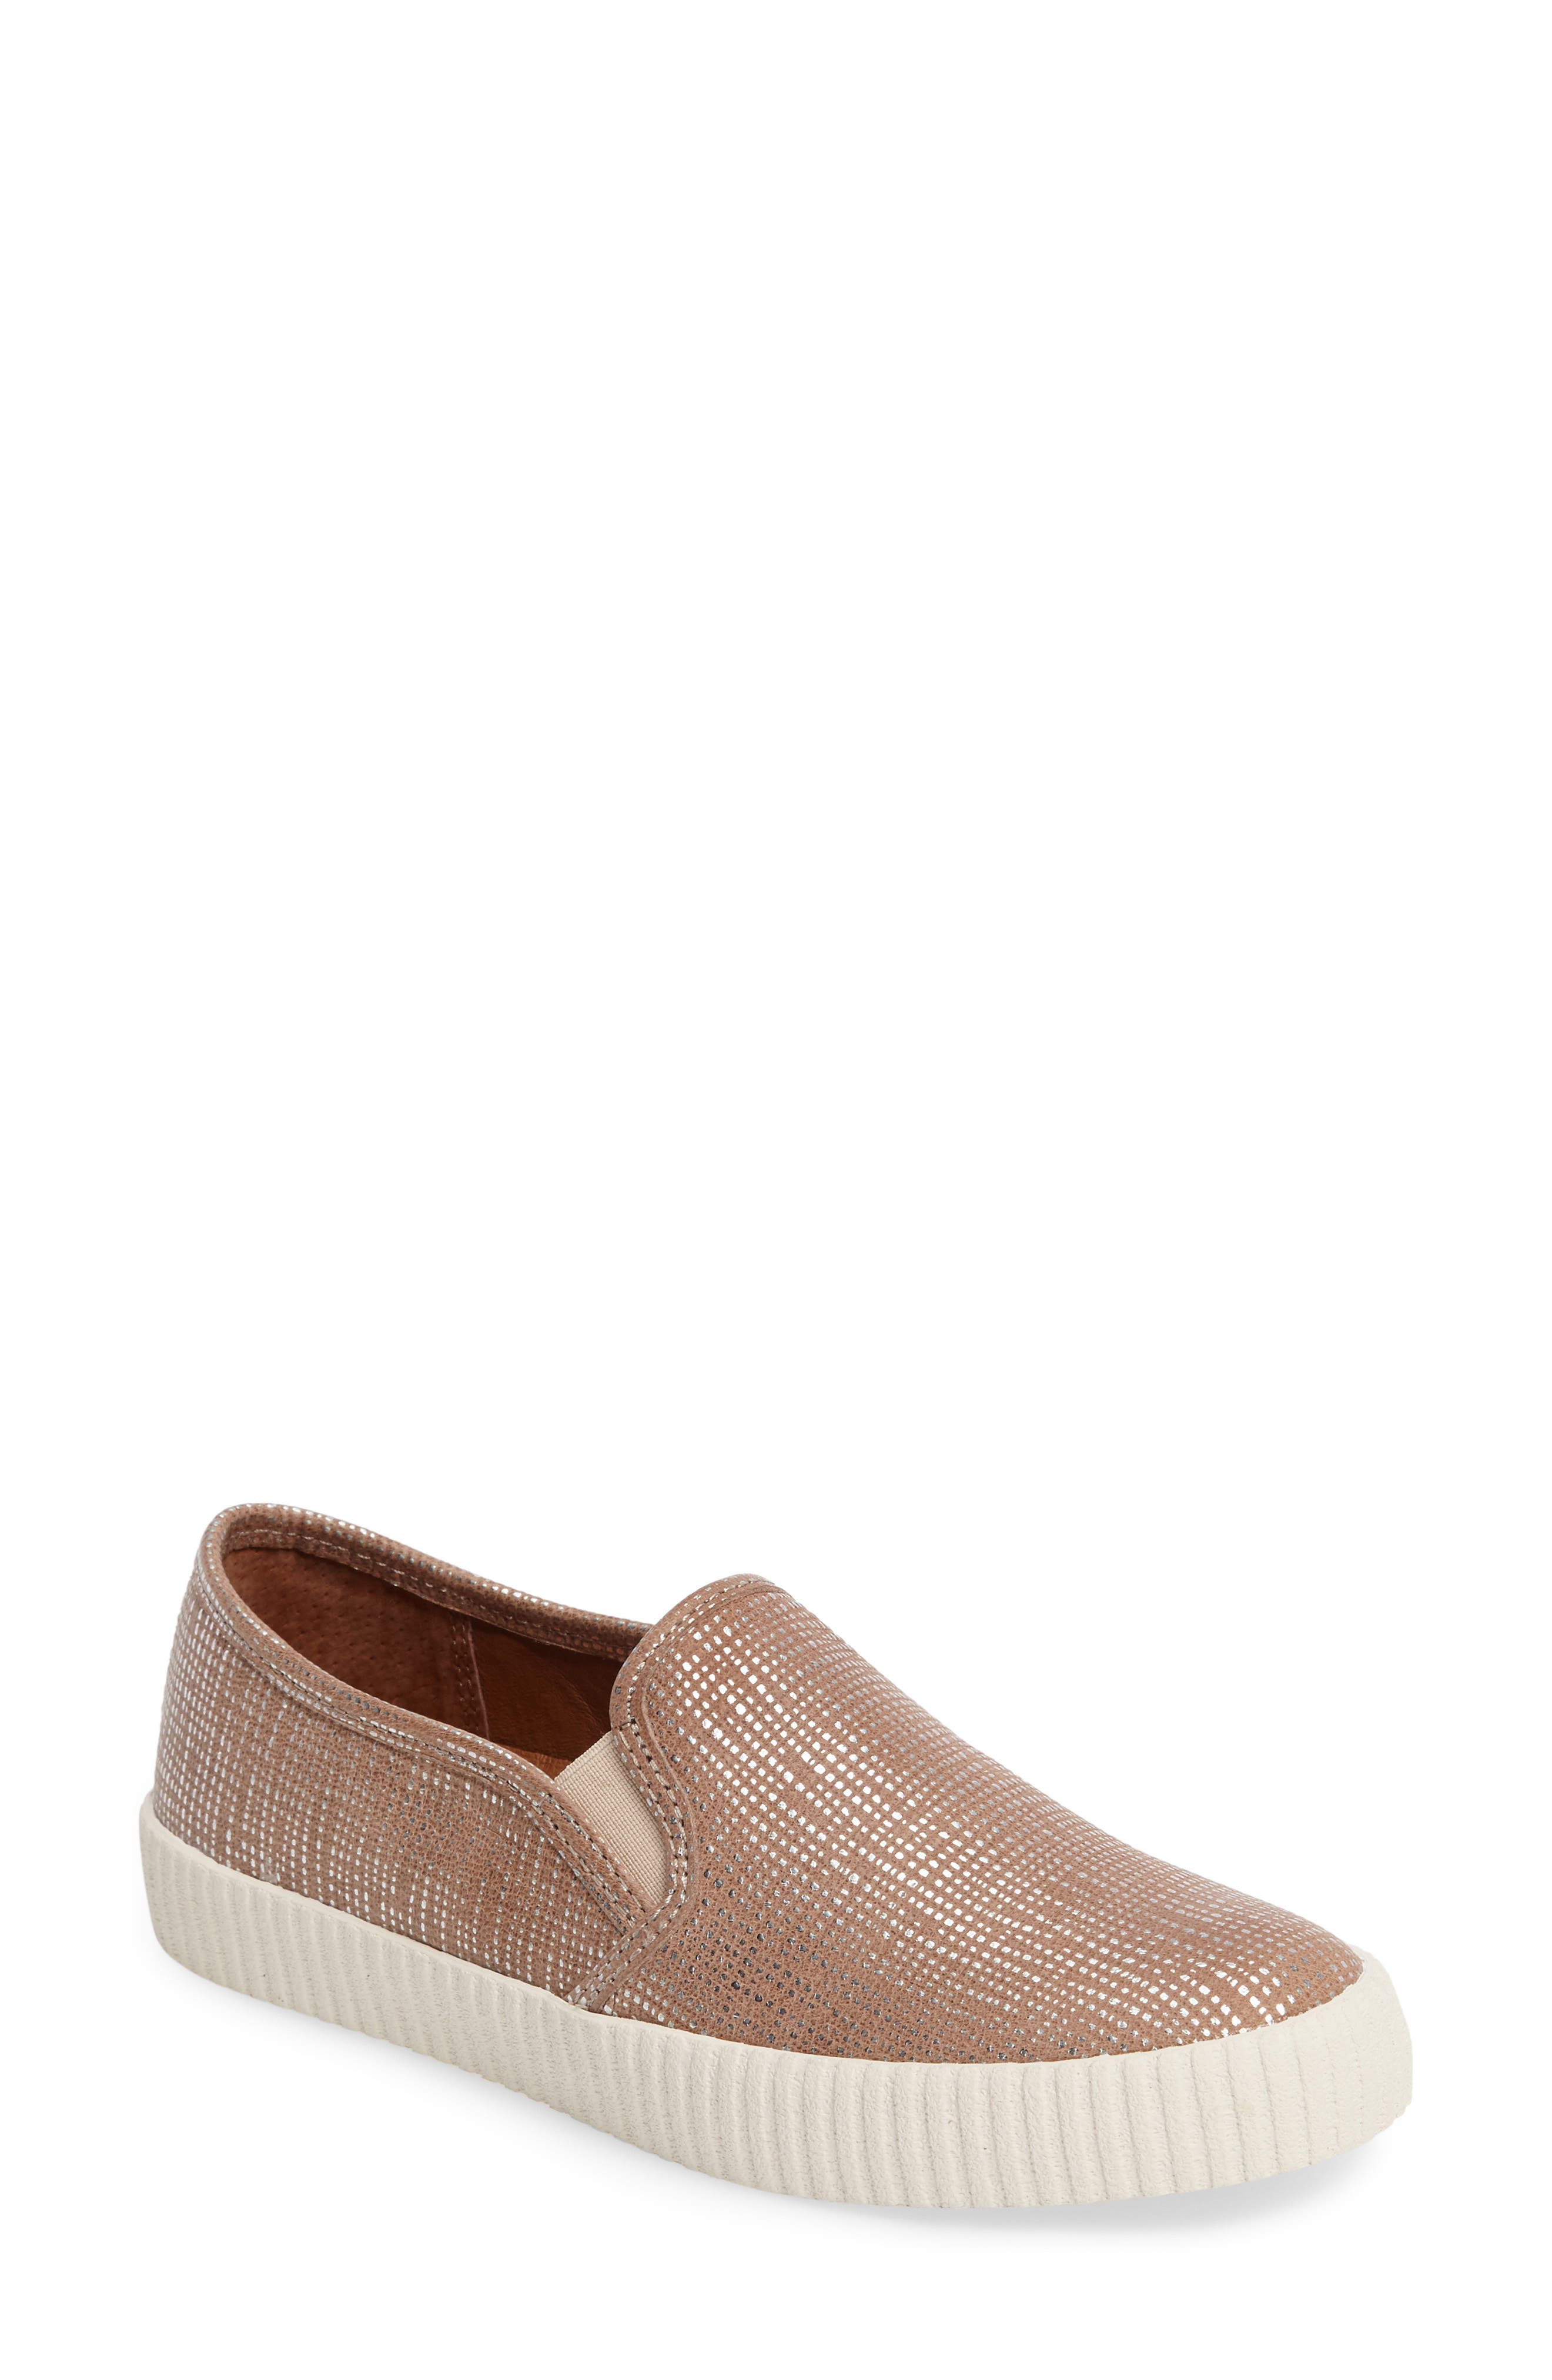 Frye Camille Slip-On Sneaker (Women)